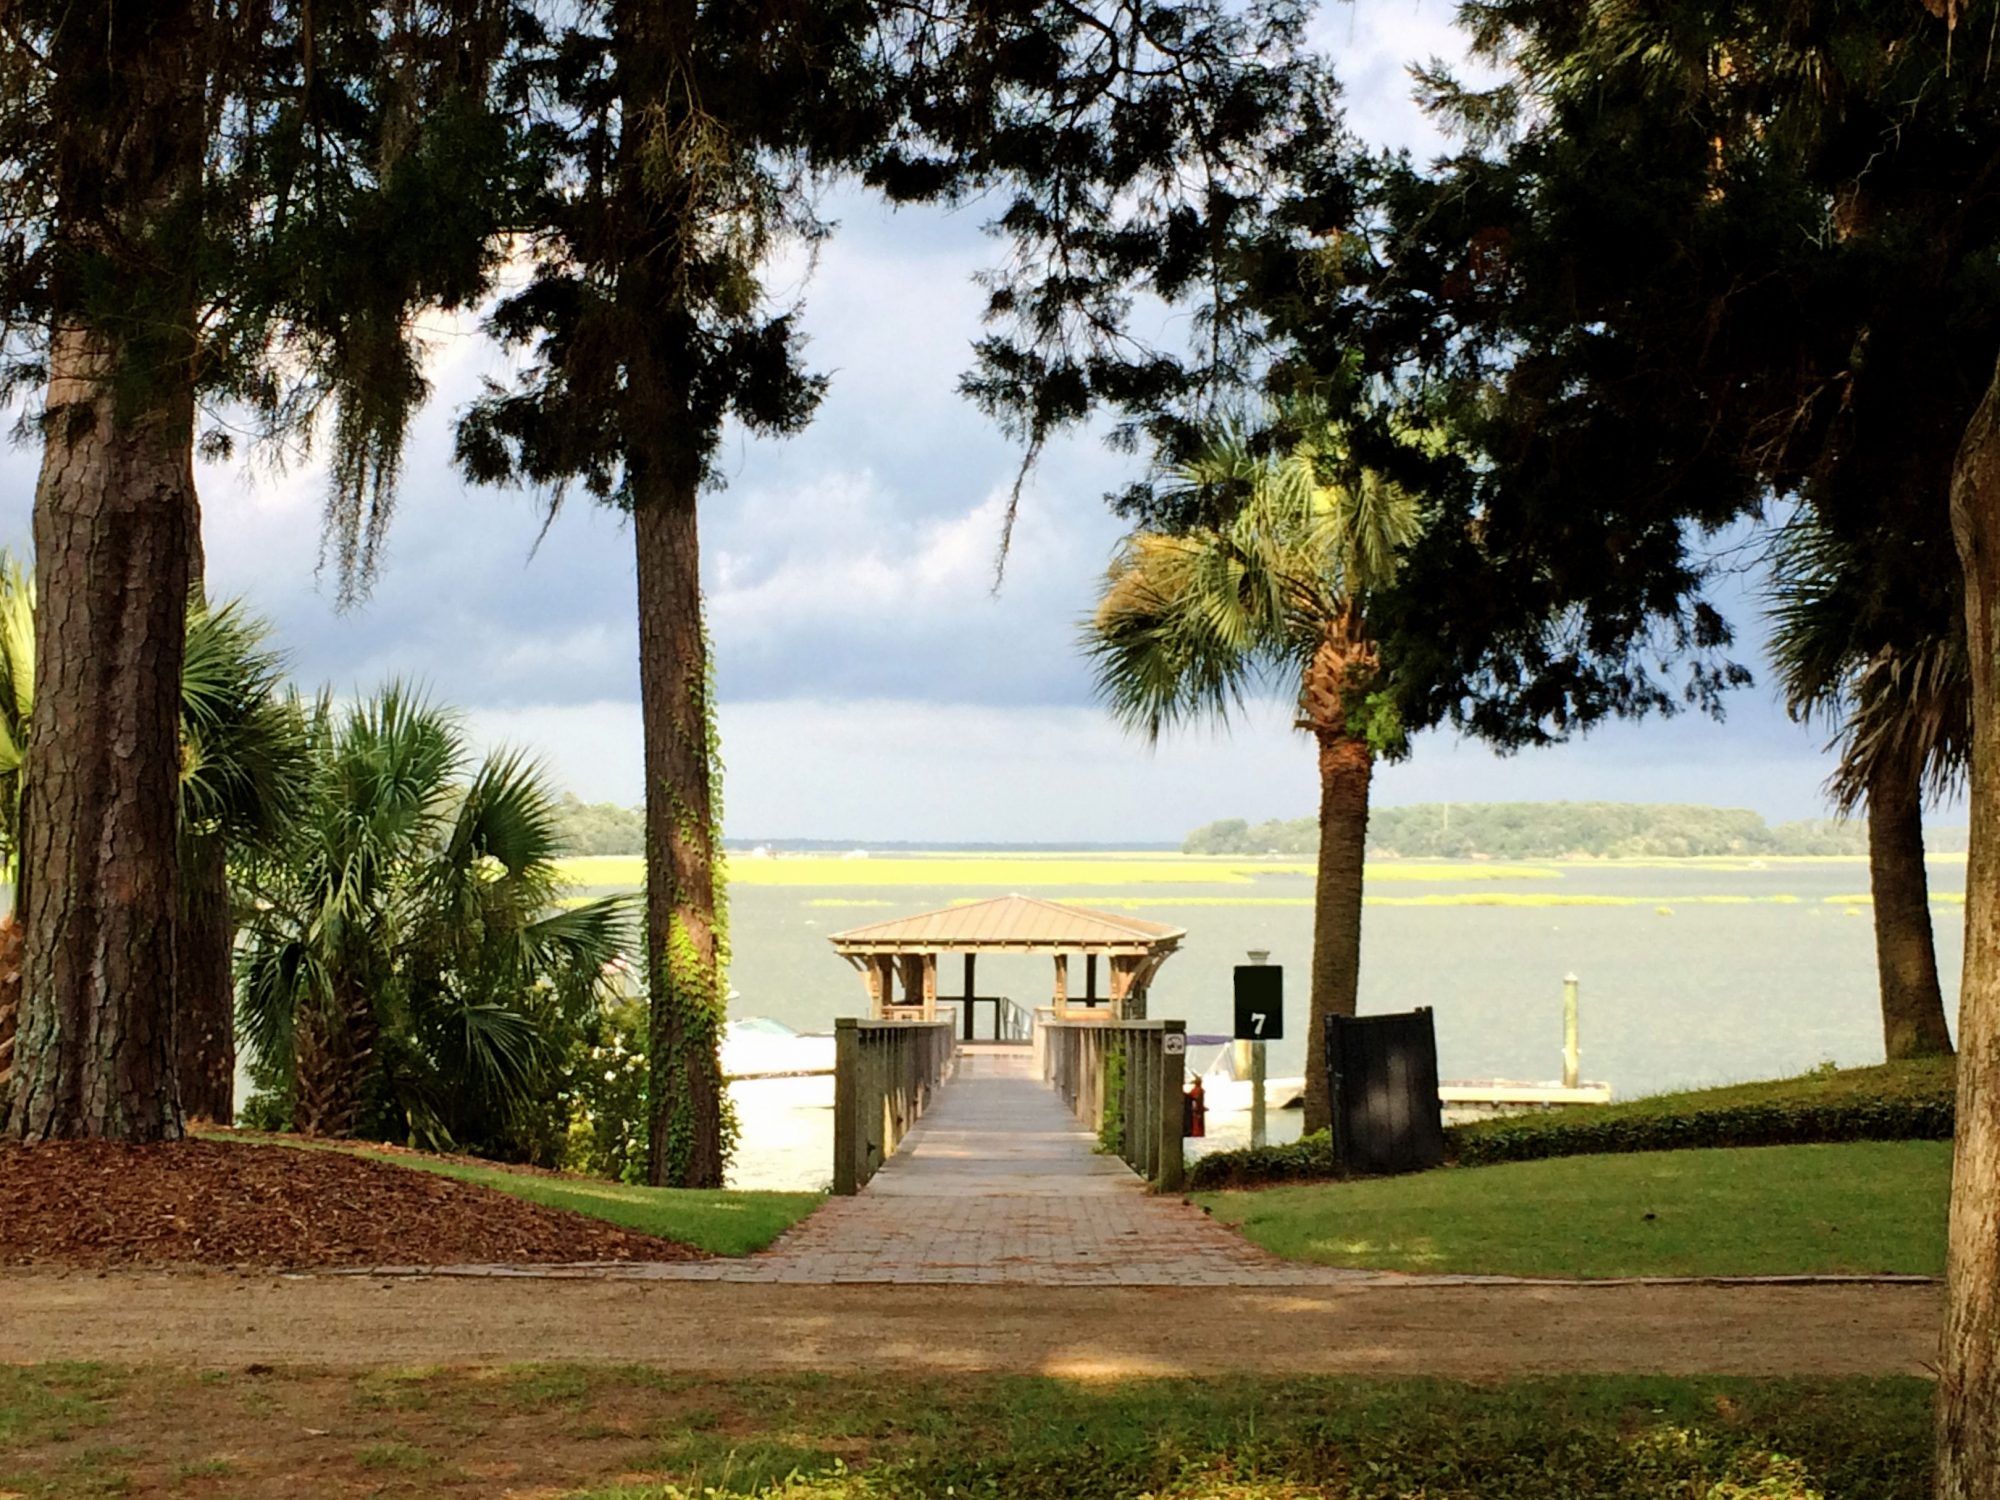 Bluffton Park, South Carolina